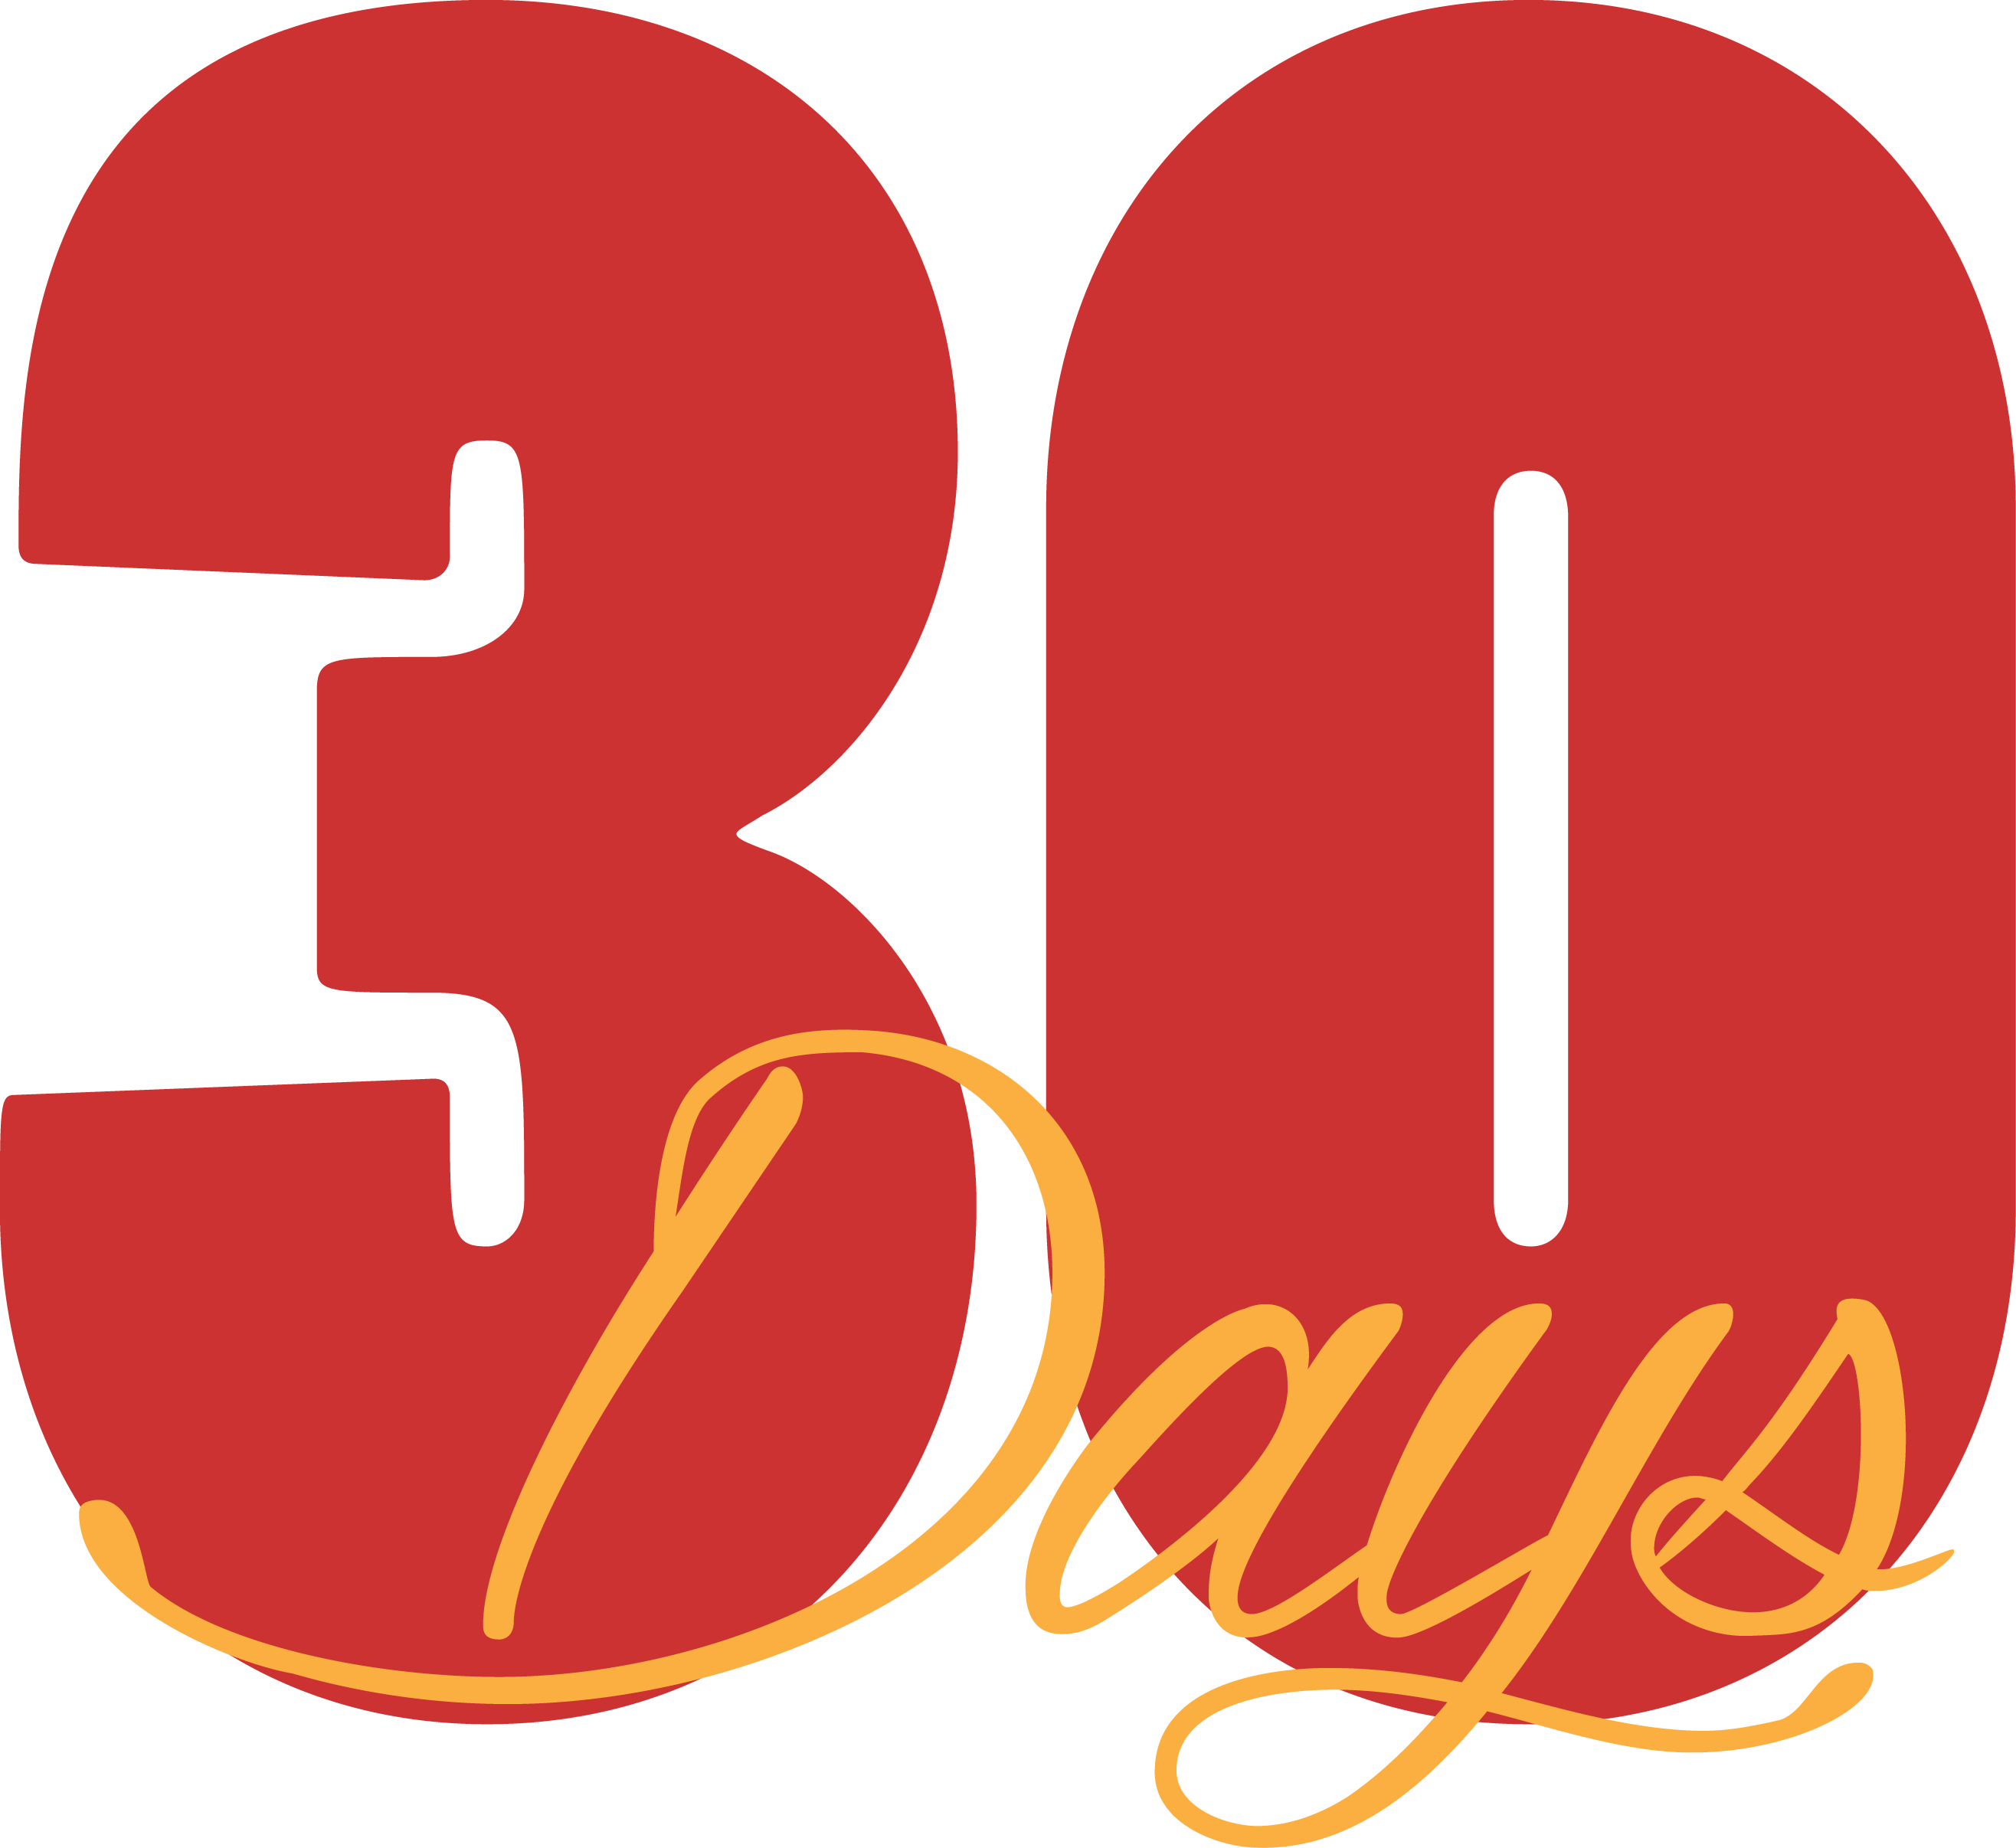 30-Days-stamp-red-and-gold-4